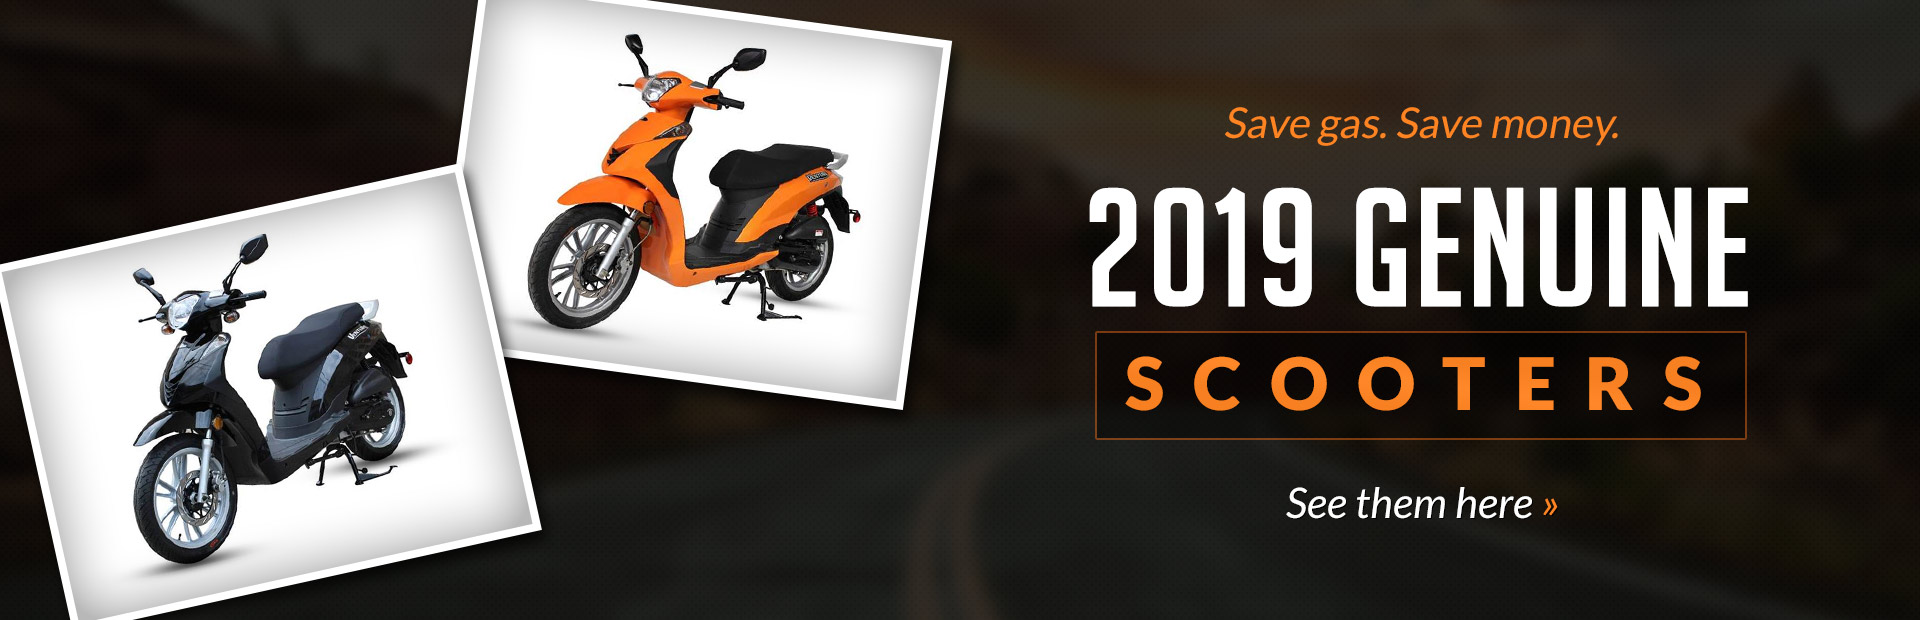 2019 Genuine Scooters: Click here to view the models.